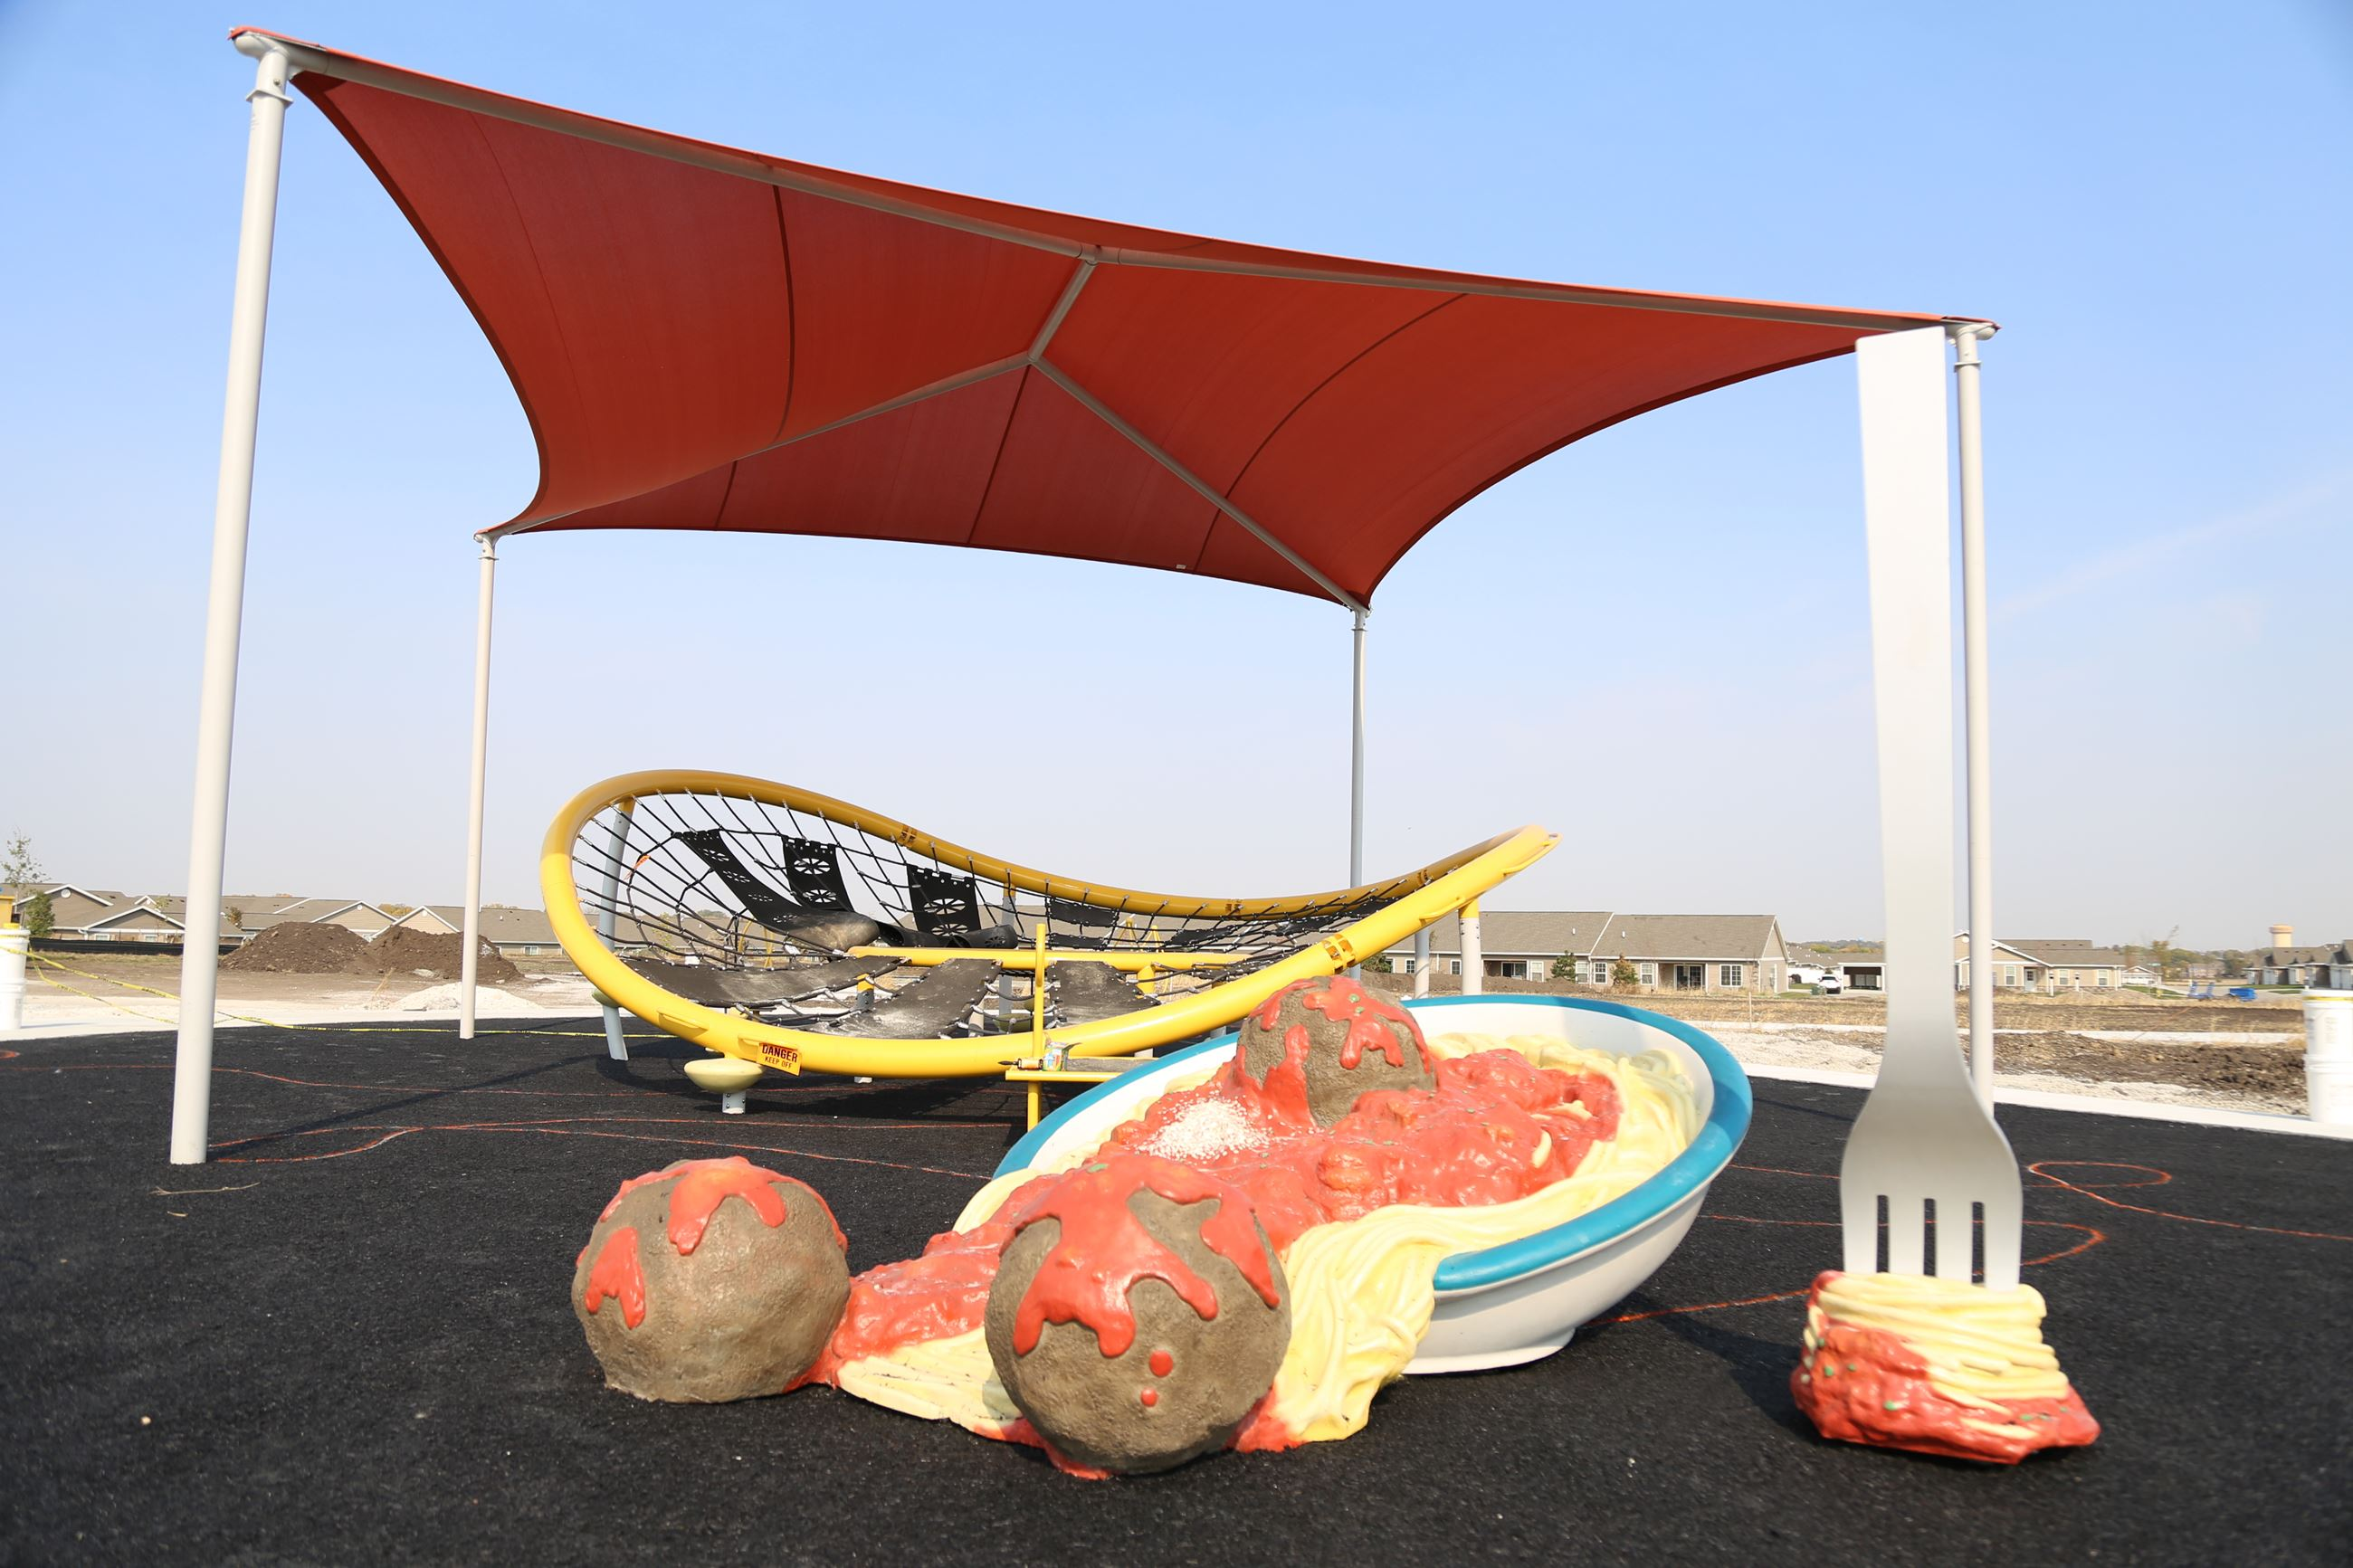 Spaghetti and meatball play equipment at Alice Nizzi Park